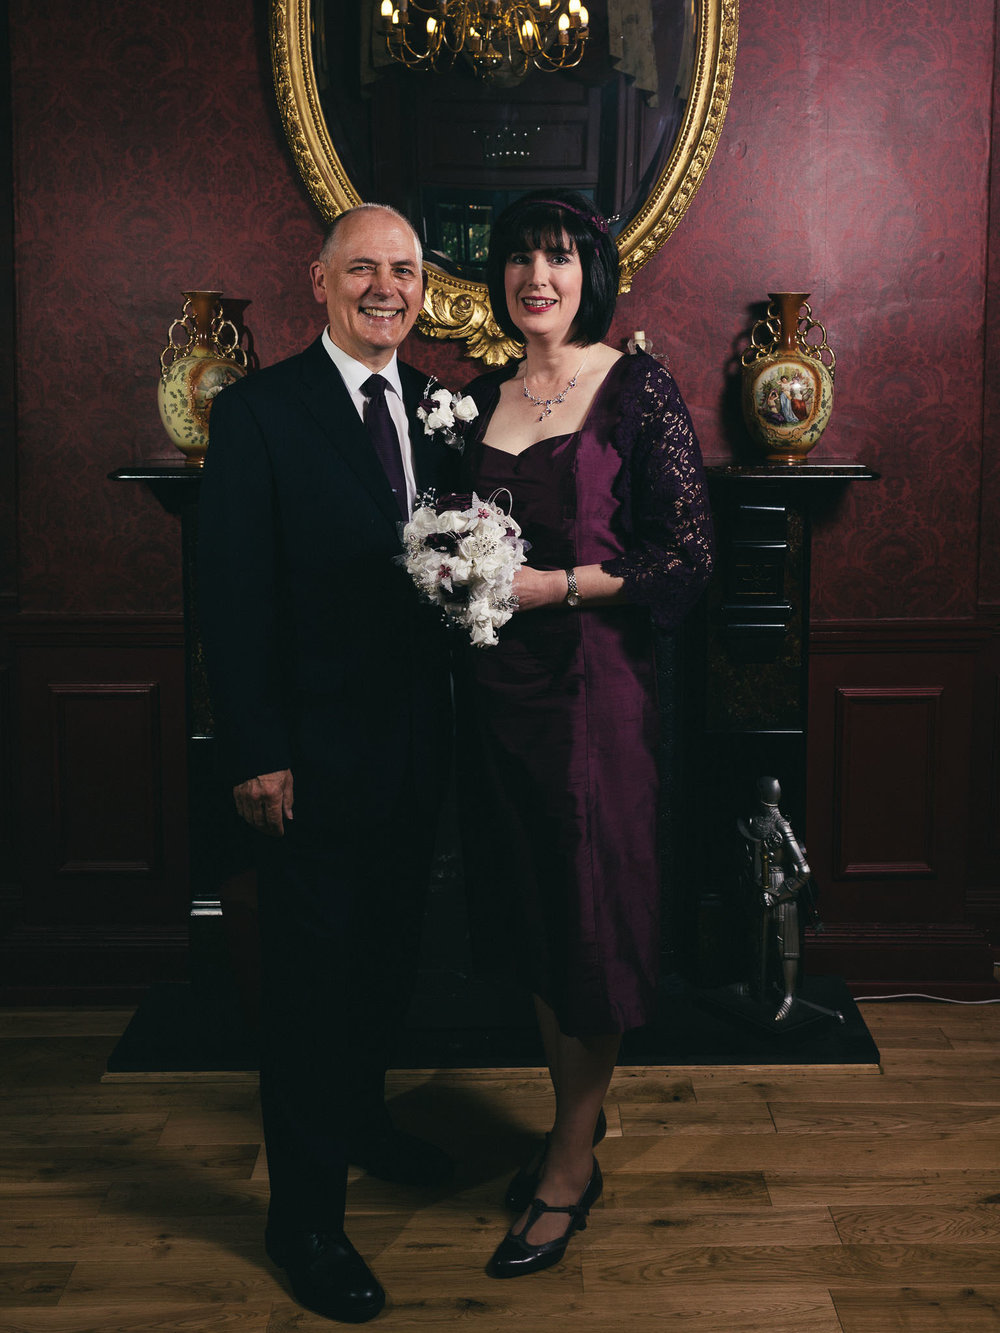 Bride and groom in front of an opulent fireplace before their wedding